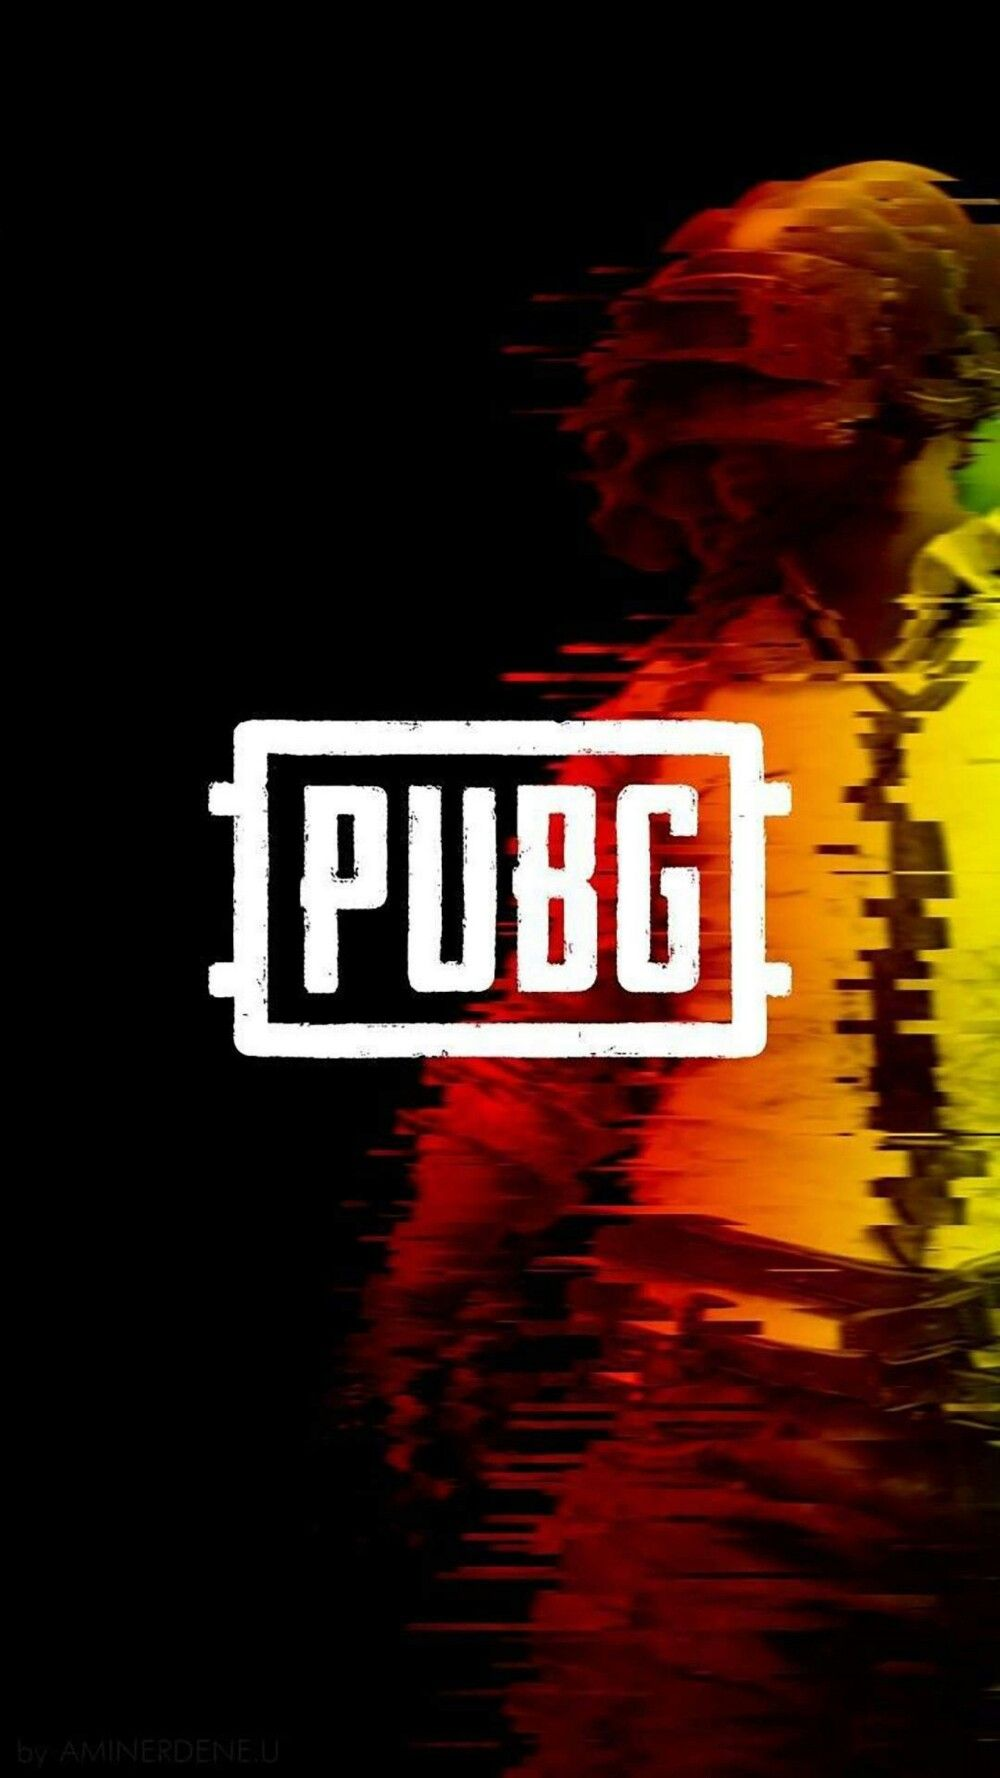 A glitch pubg wallpaper for your phone in 2020 Gaming